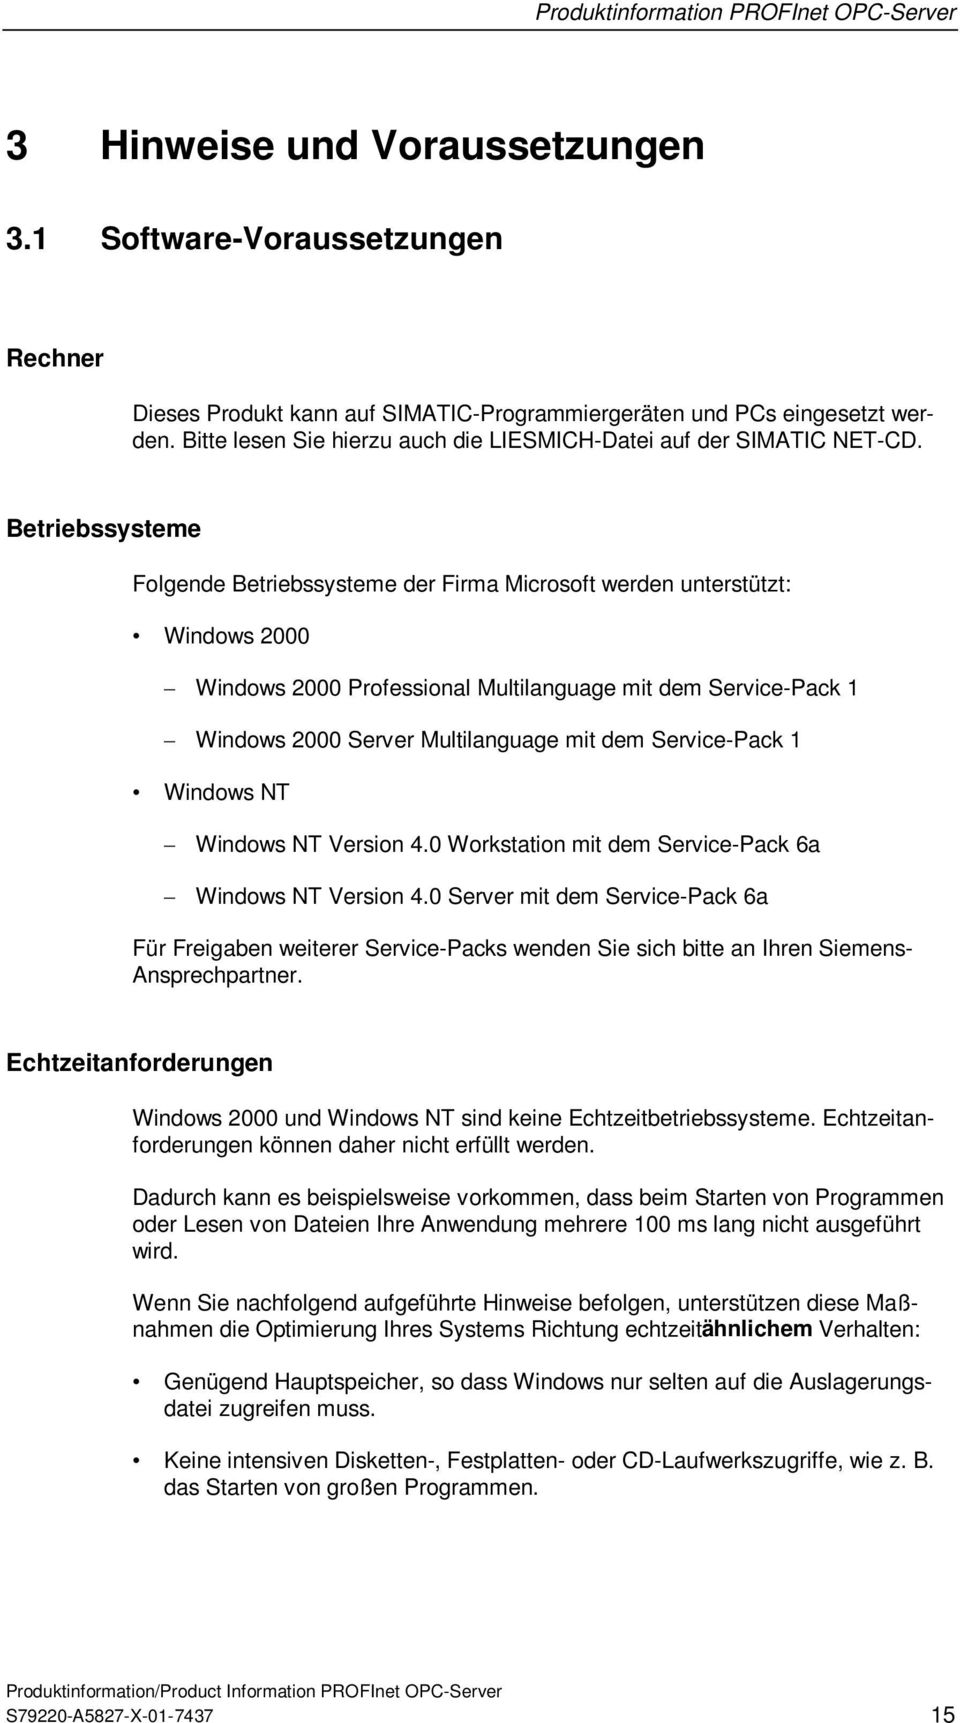 Betriebssysteme Folgende Betriebssysteme der Firma Microsoft werden unterstützt: Windows 2000 Windows 2000 Professional Multilanguage mit dem Service-Pack 1 Windows 2000 Server Multilanguage mit dem